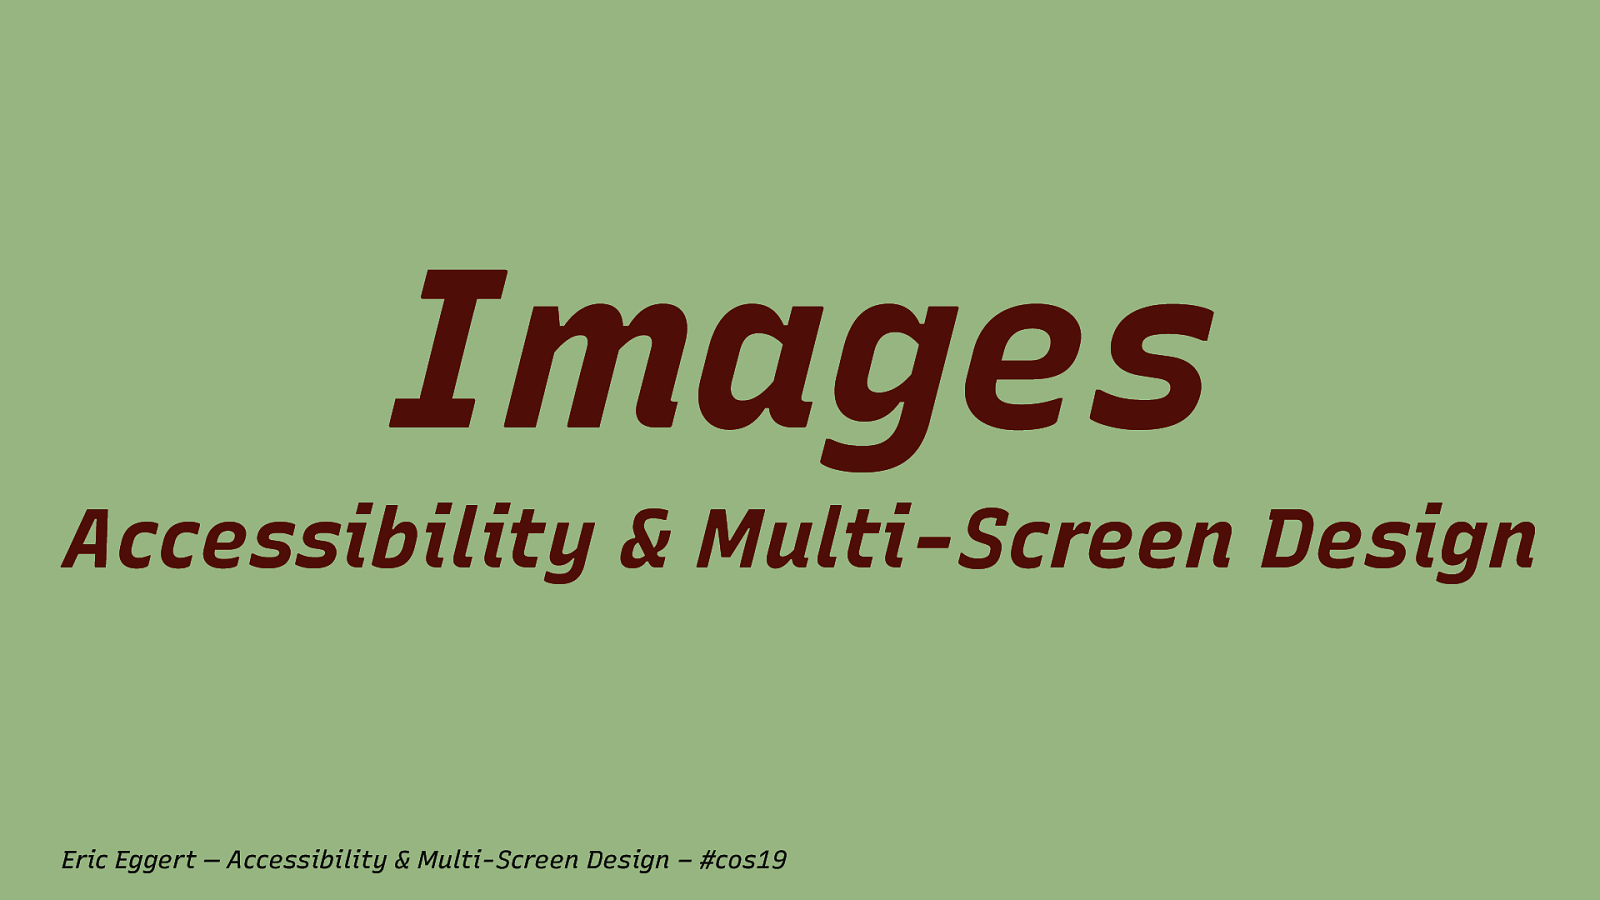 Accessibility & Multi-Screen Design: Images